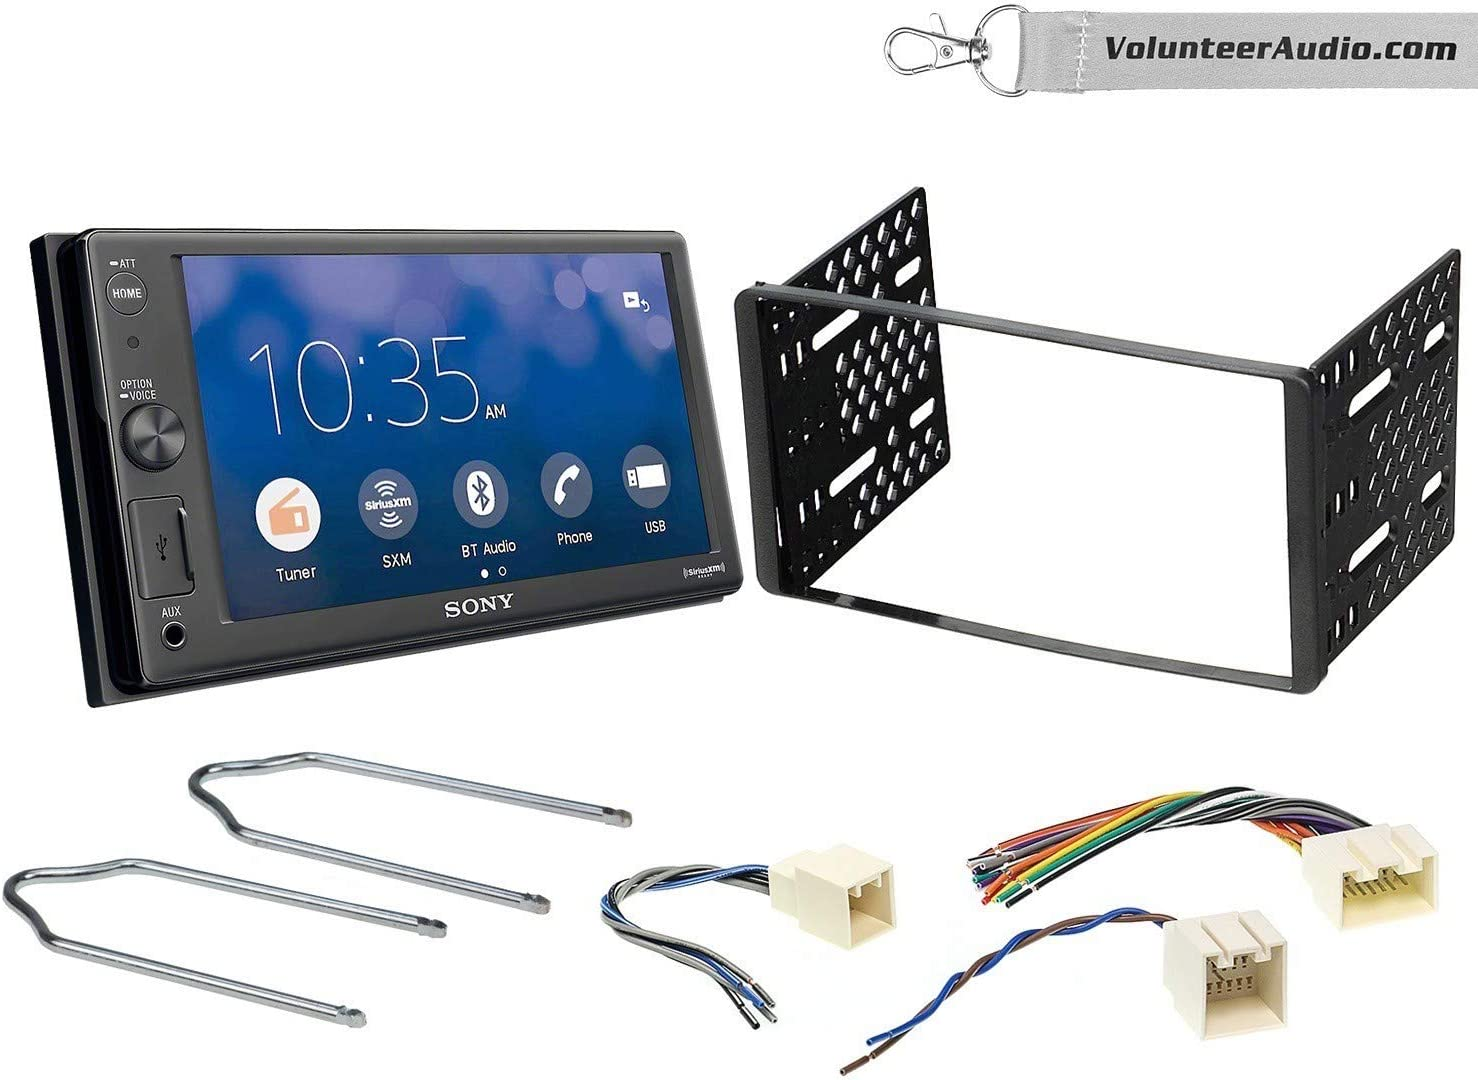 2000-2004 Excursion NO CD Player Fits 2001-2004 Escape 1999-2004 F-150 2001-2003 Mustang Sirius XM Ready Sony XAV-AX1000 Double Din Radio Install Kit With Apple CarPlay